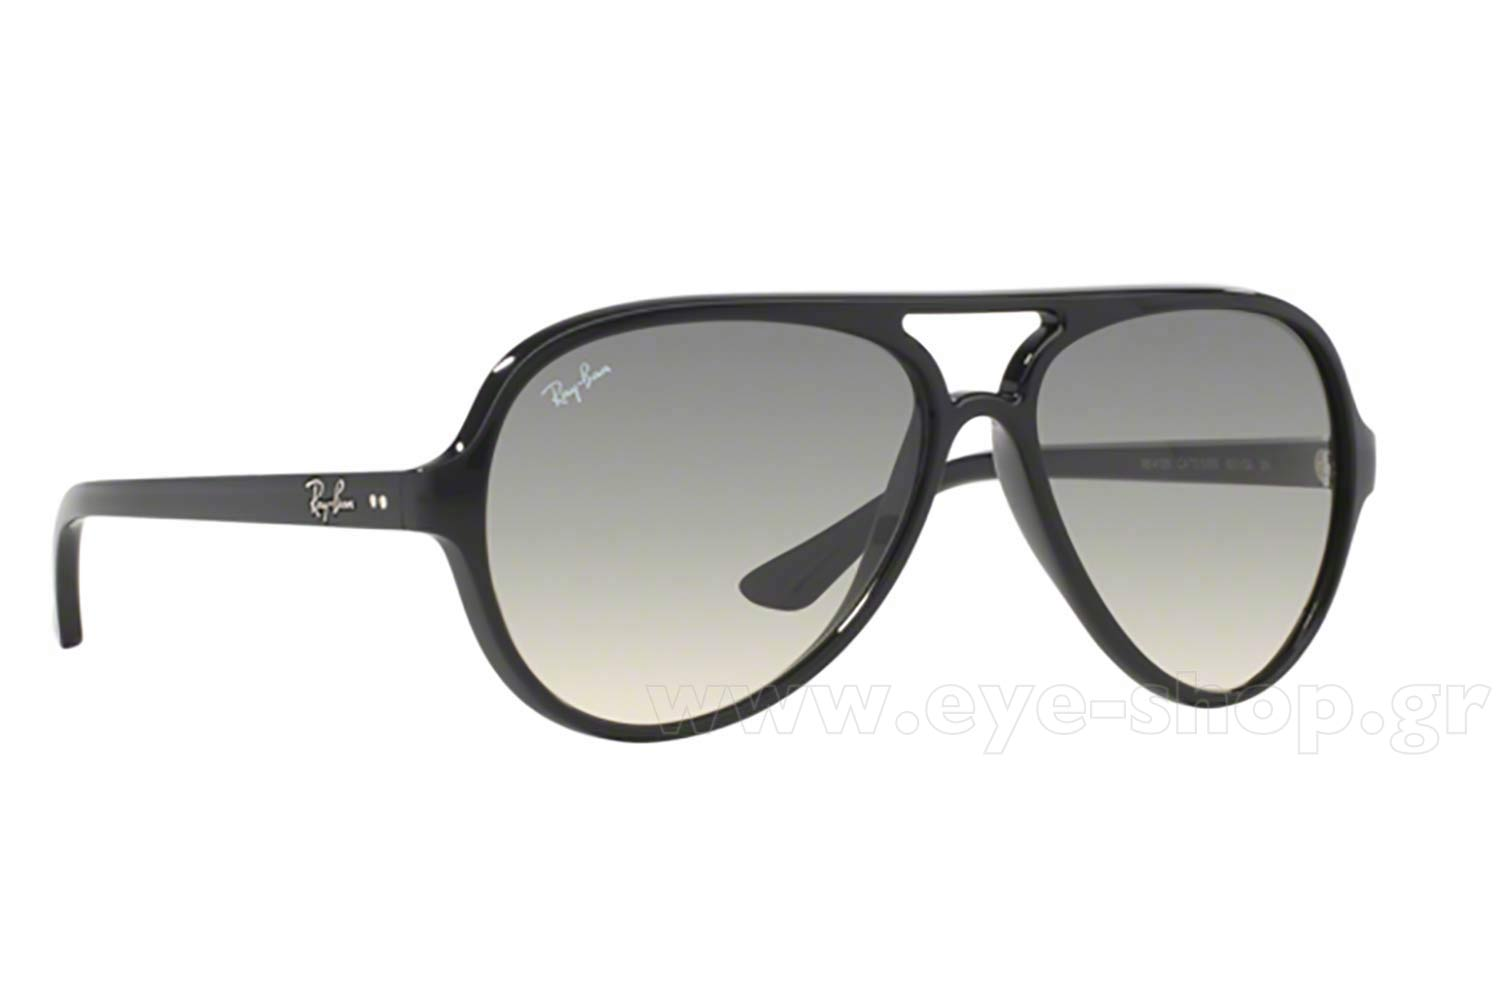 4ef3b18bb0 Extreme ZOOM Eye-Shop. Add to Cart. Sunglasses Rayban 4125 CATS 5000 601 32